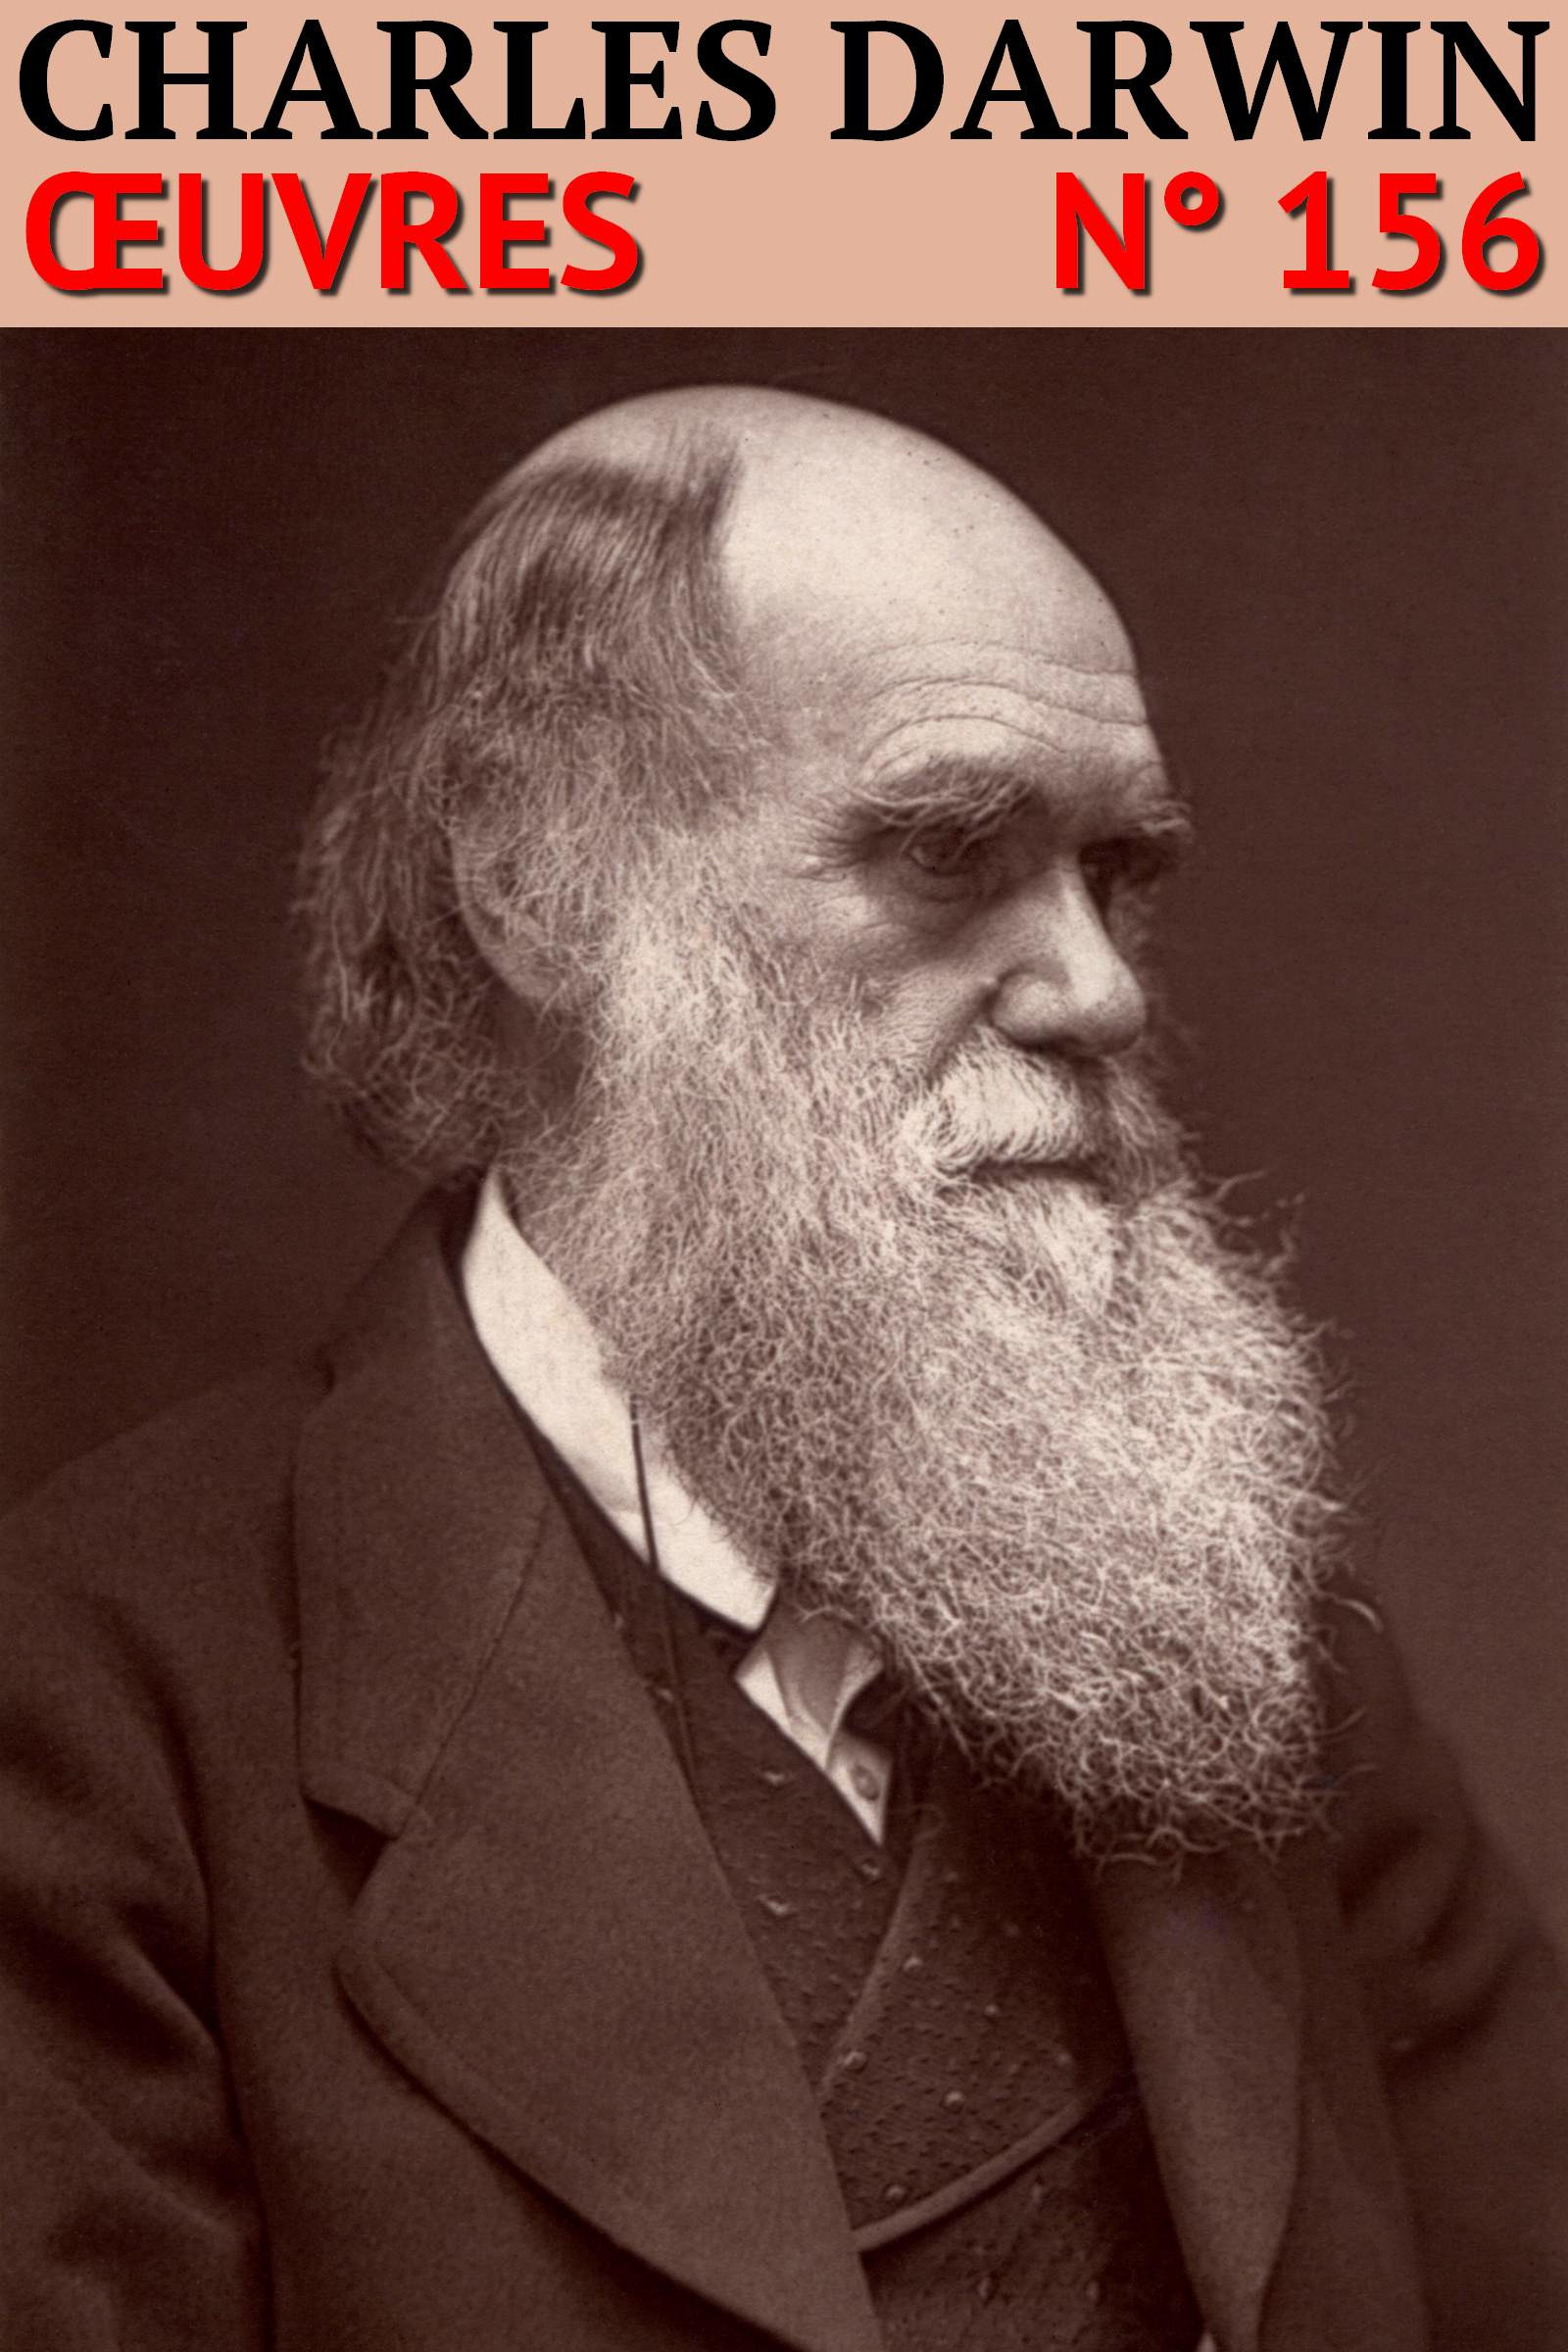 Charles Darwin - Oeuvres